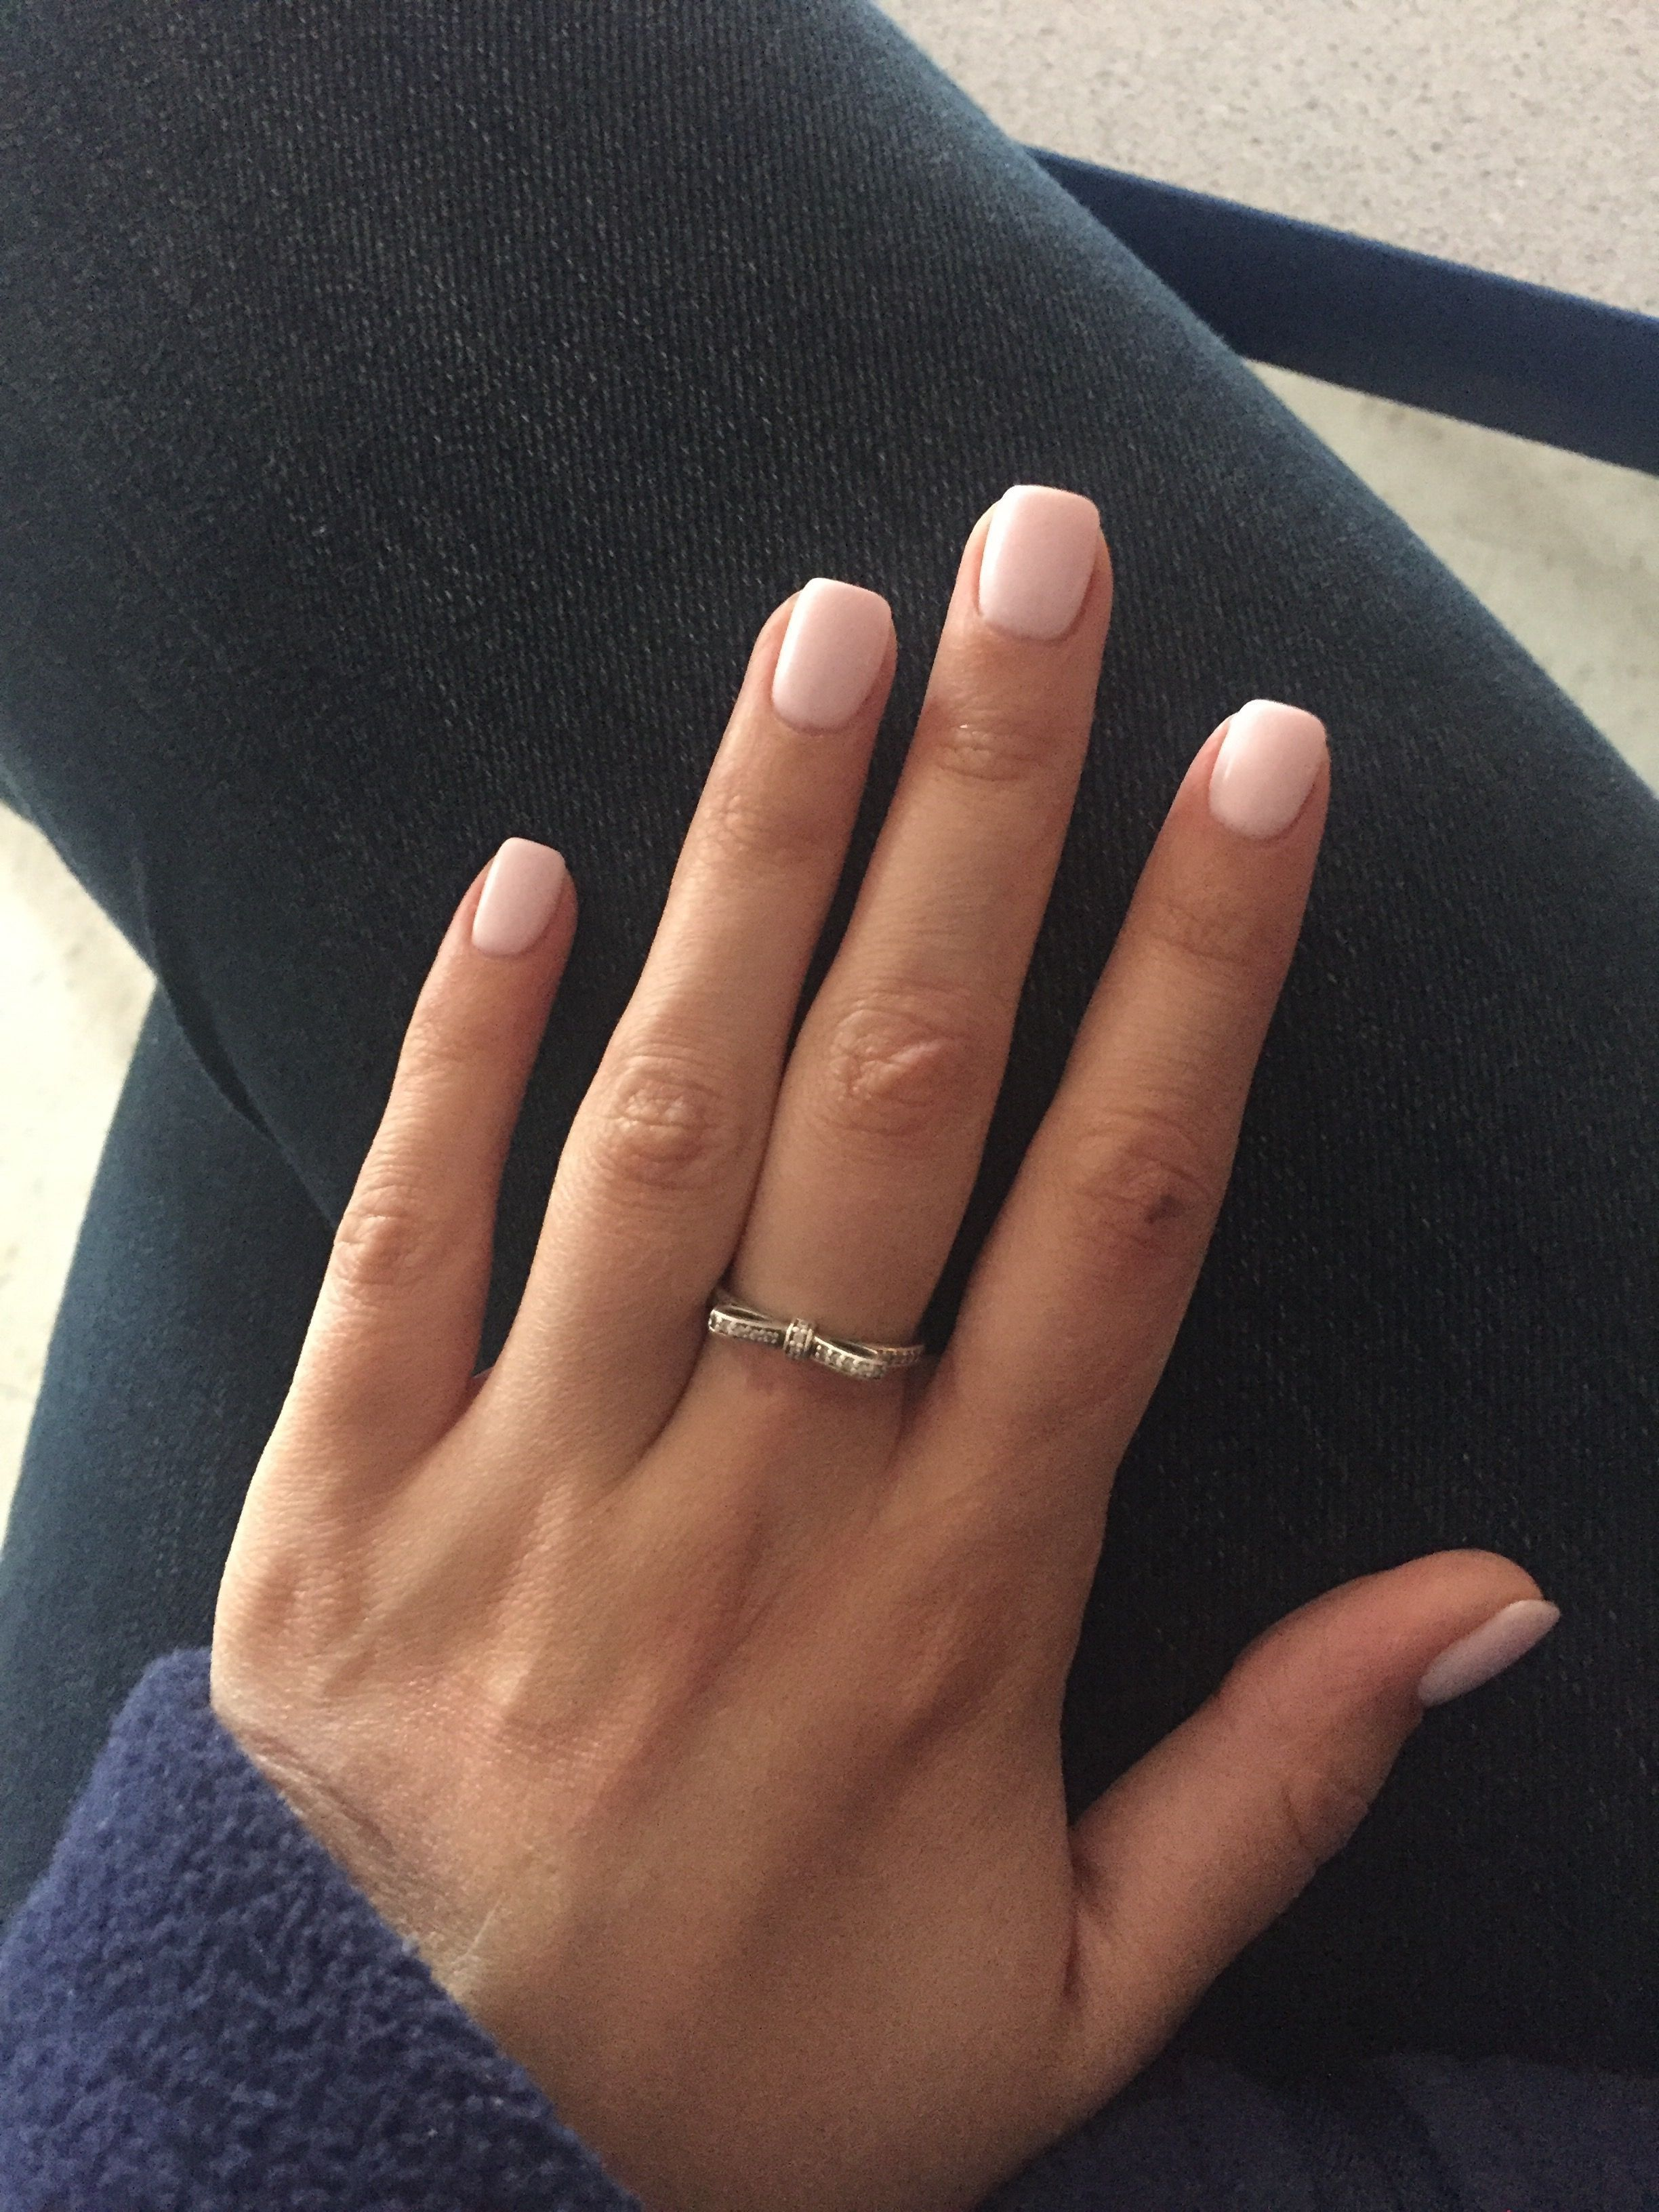 55 Short Acrylics To Make Your Nails Look More Beautiful And Attractive Square Acrylic Nails Short Acrylic Nails Short Gel Nails